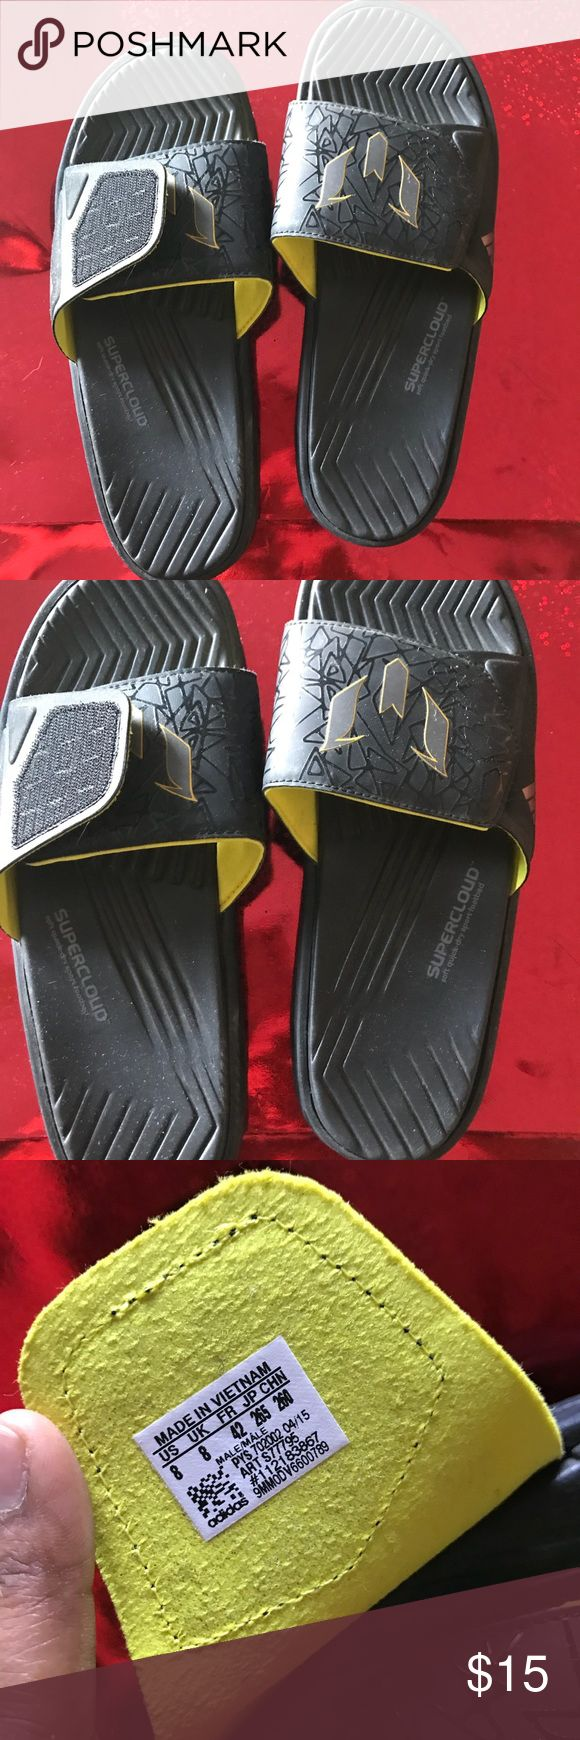 Adidas sandals Never used adidas Shoes Sandals & Flip-Flops